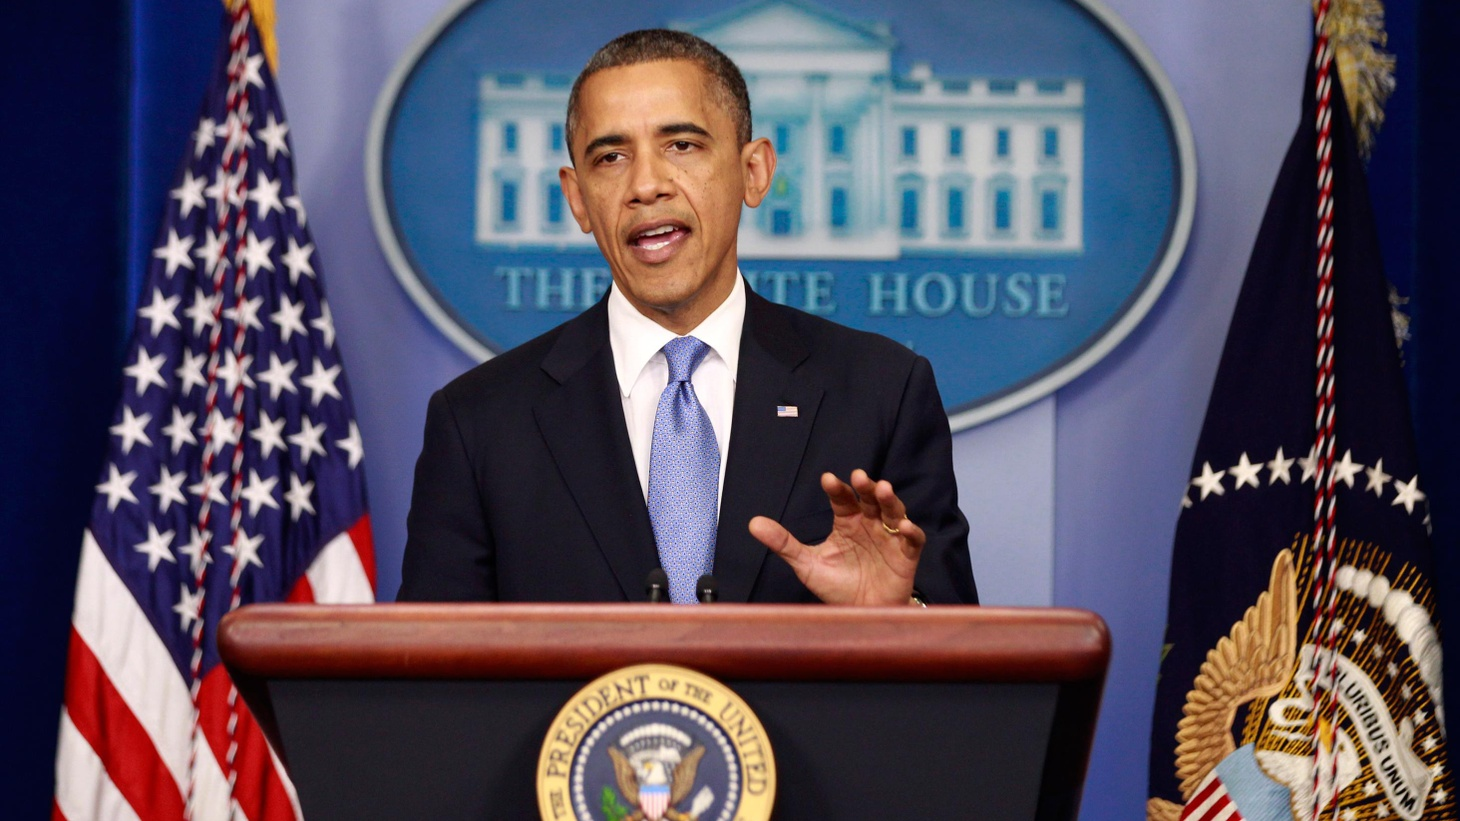 President Obama holds a press conference today at noon on Snowden and relations with Russia, Egypt, NSA surveillance, immigration reform and the economy.